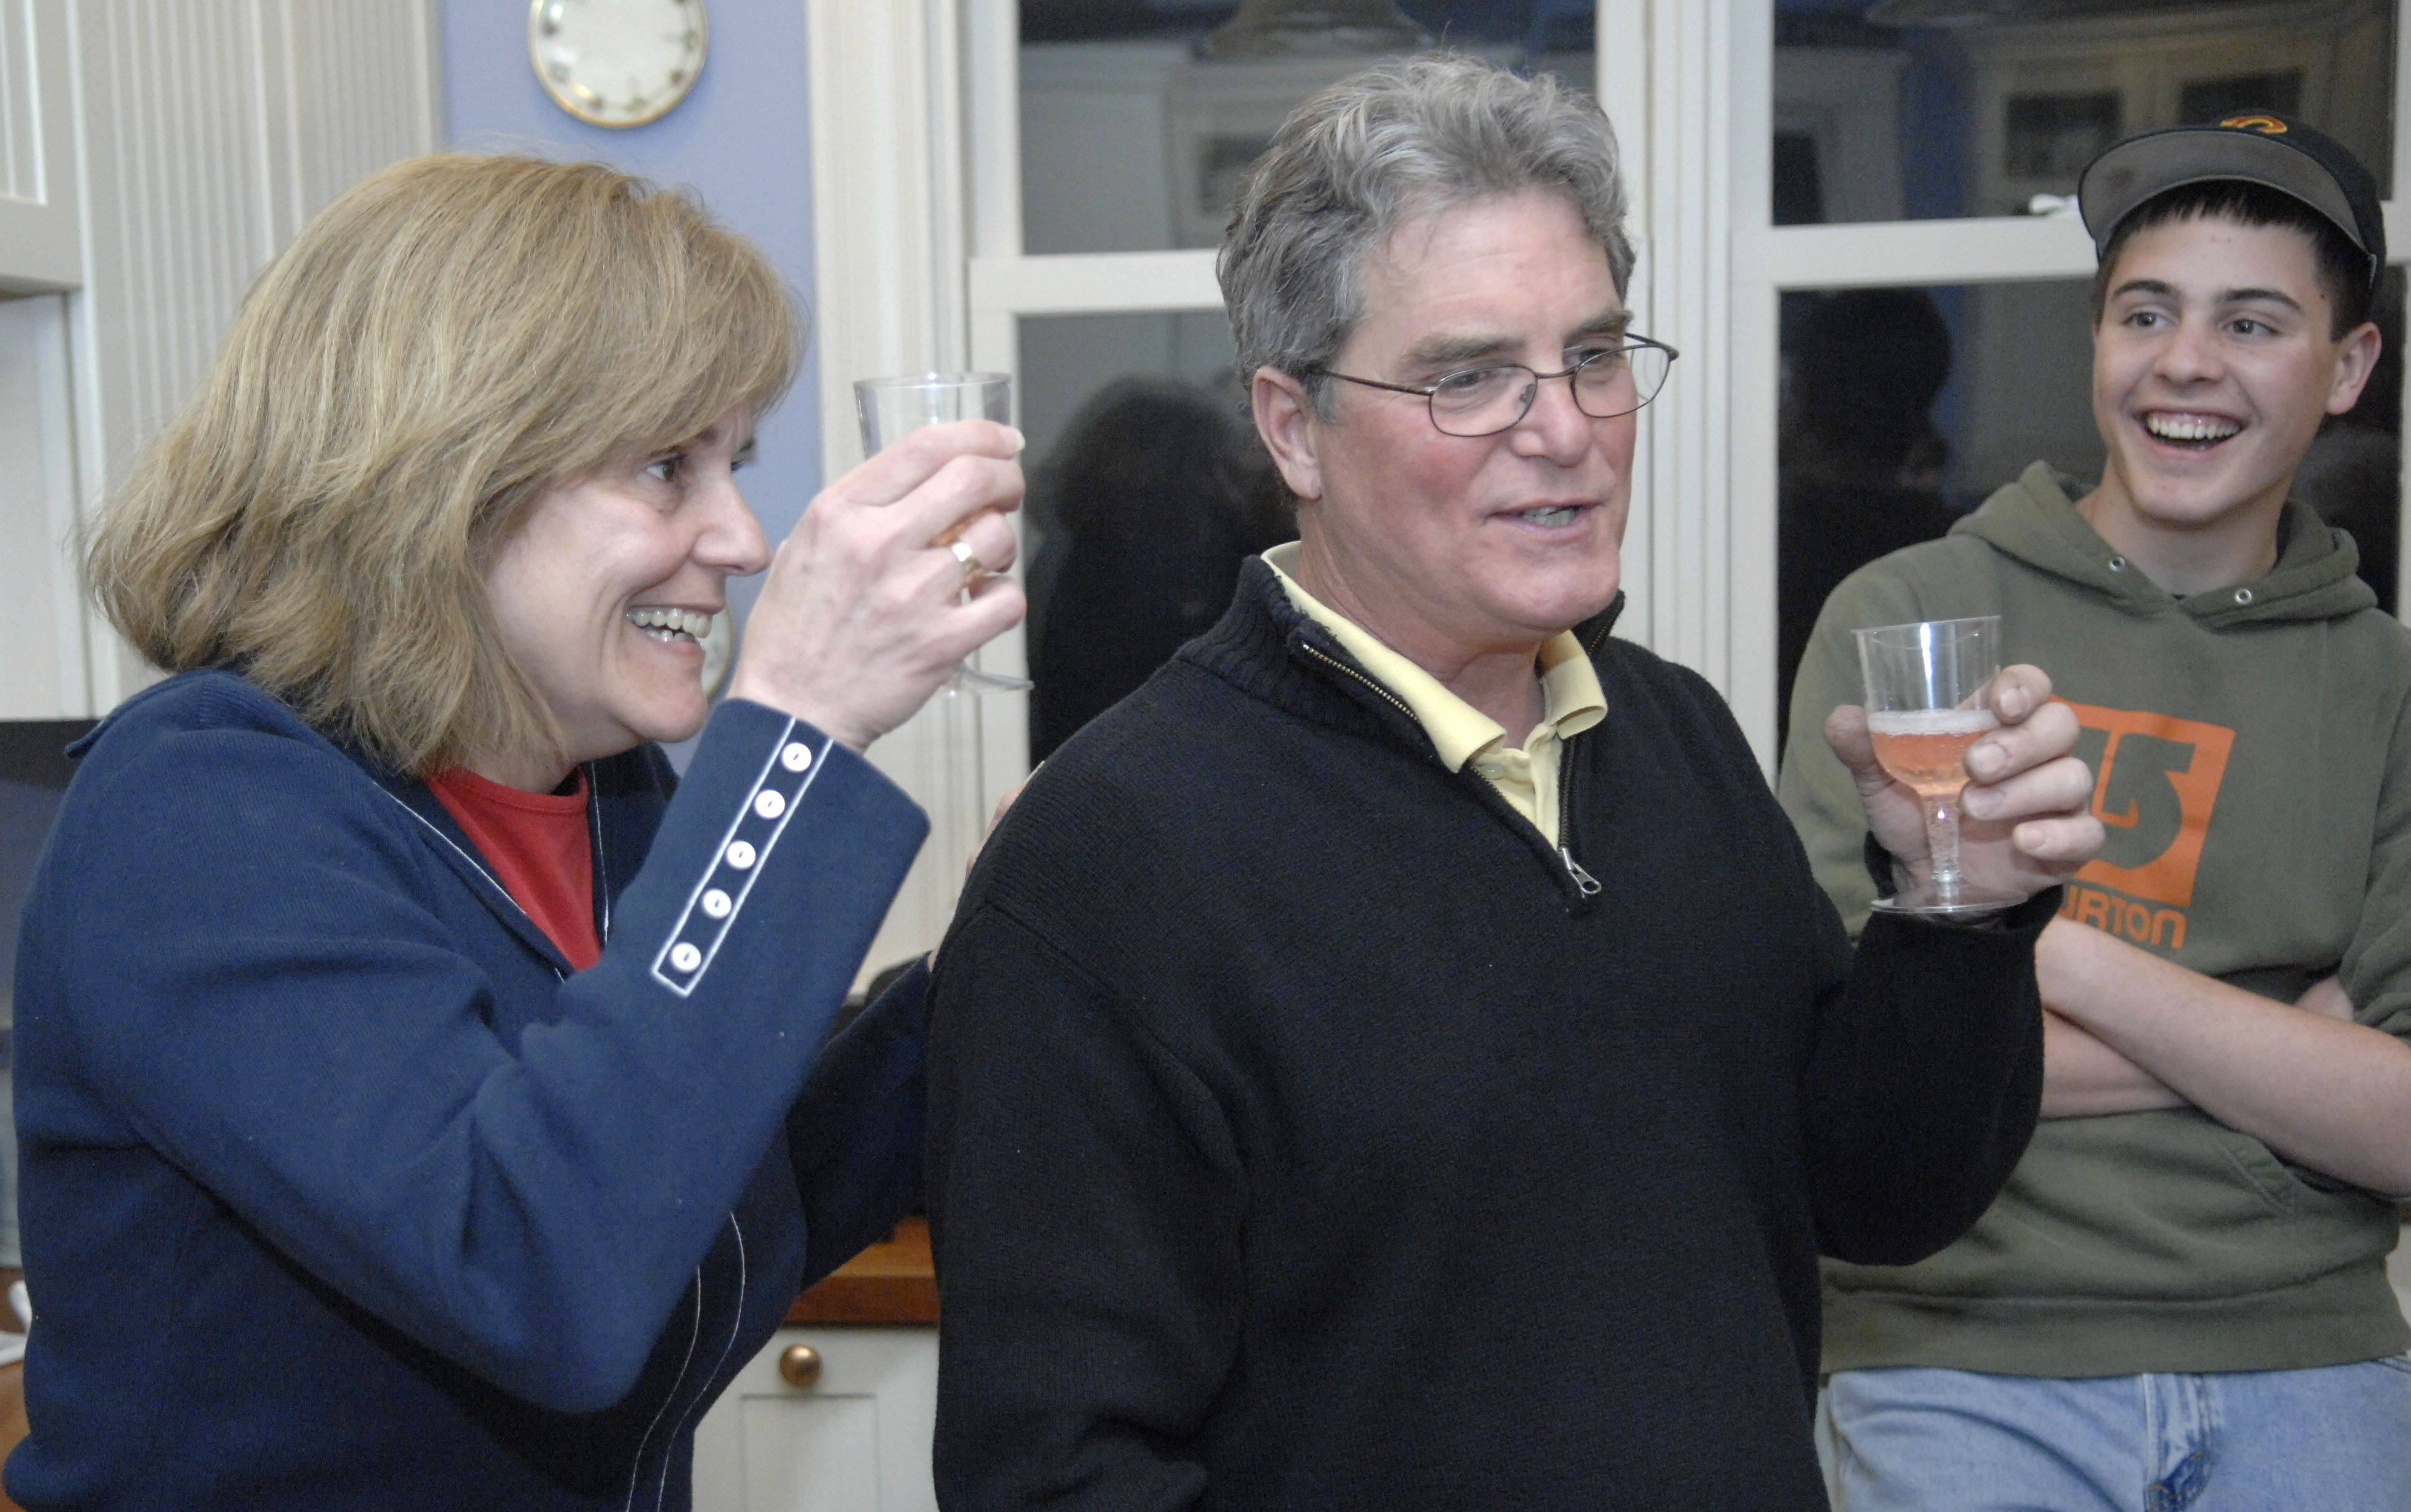 Batavia 4th Ward alderman candidate Susan Stark and husband Vincent Gatto toast with champagne in their Batavia kitchen as election results come in Tuesday night. They're joined by their son Jonathan Seagren.